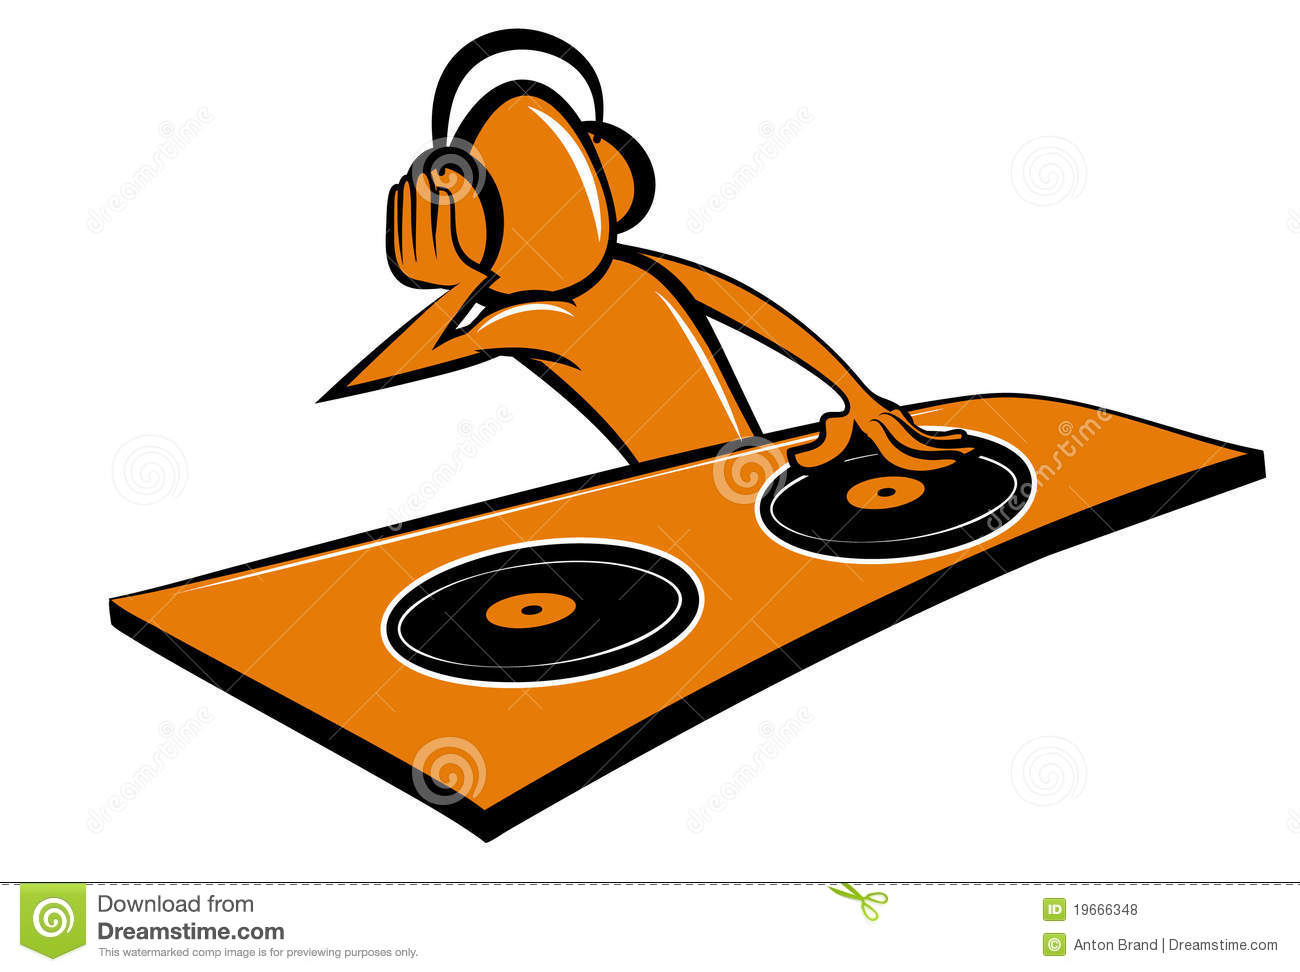 Stylised Cartoon DJ Design Royalty Free Stock Photos - Image: 19666348